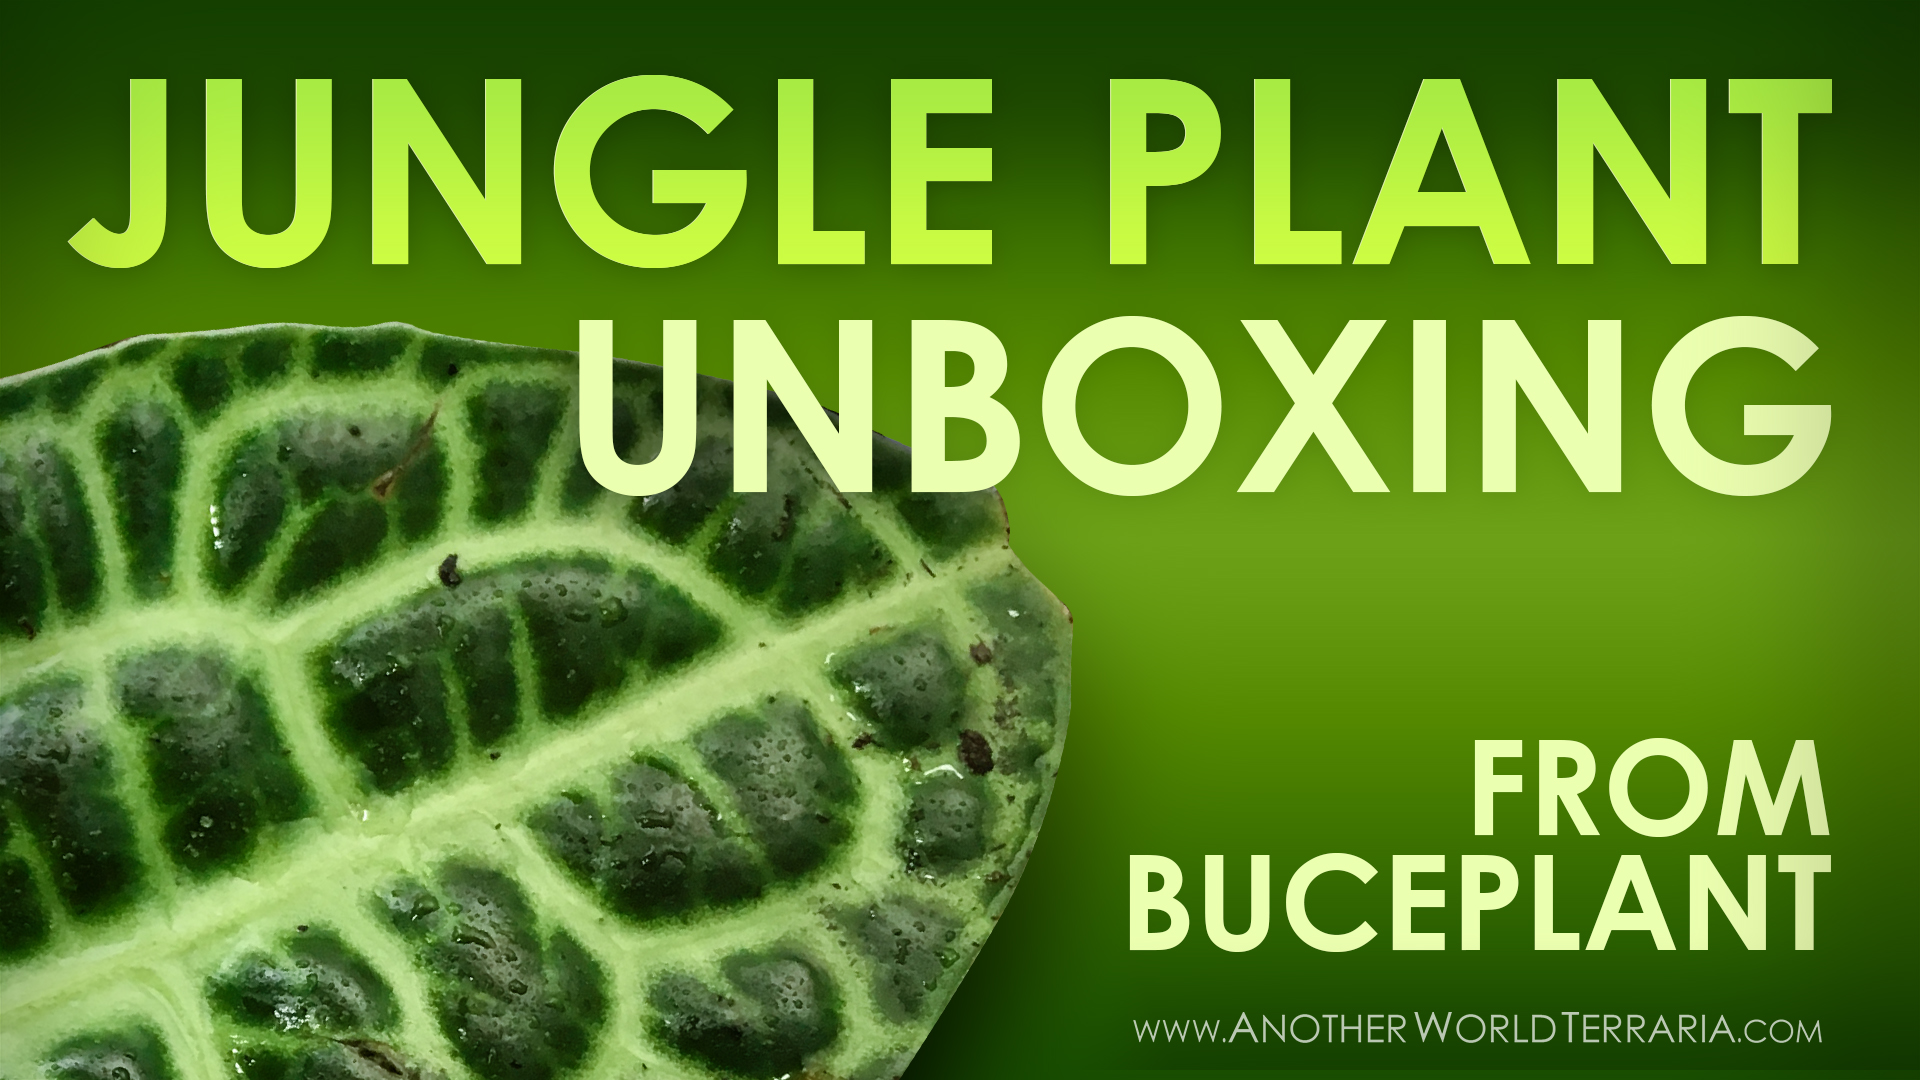 Jungle Plant Unboxing from Buceplant